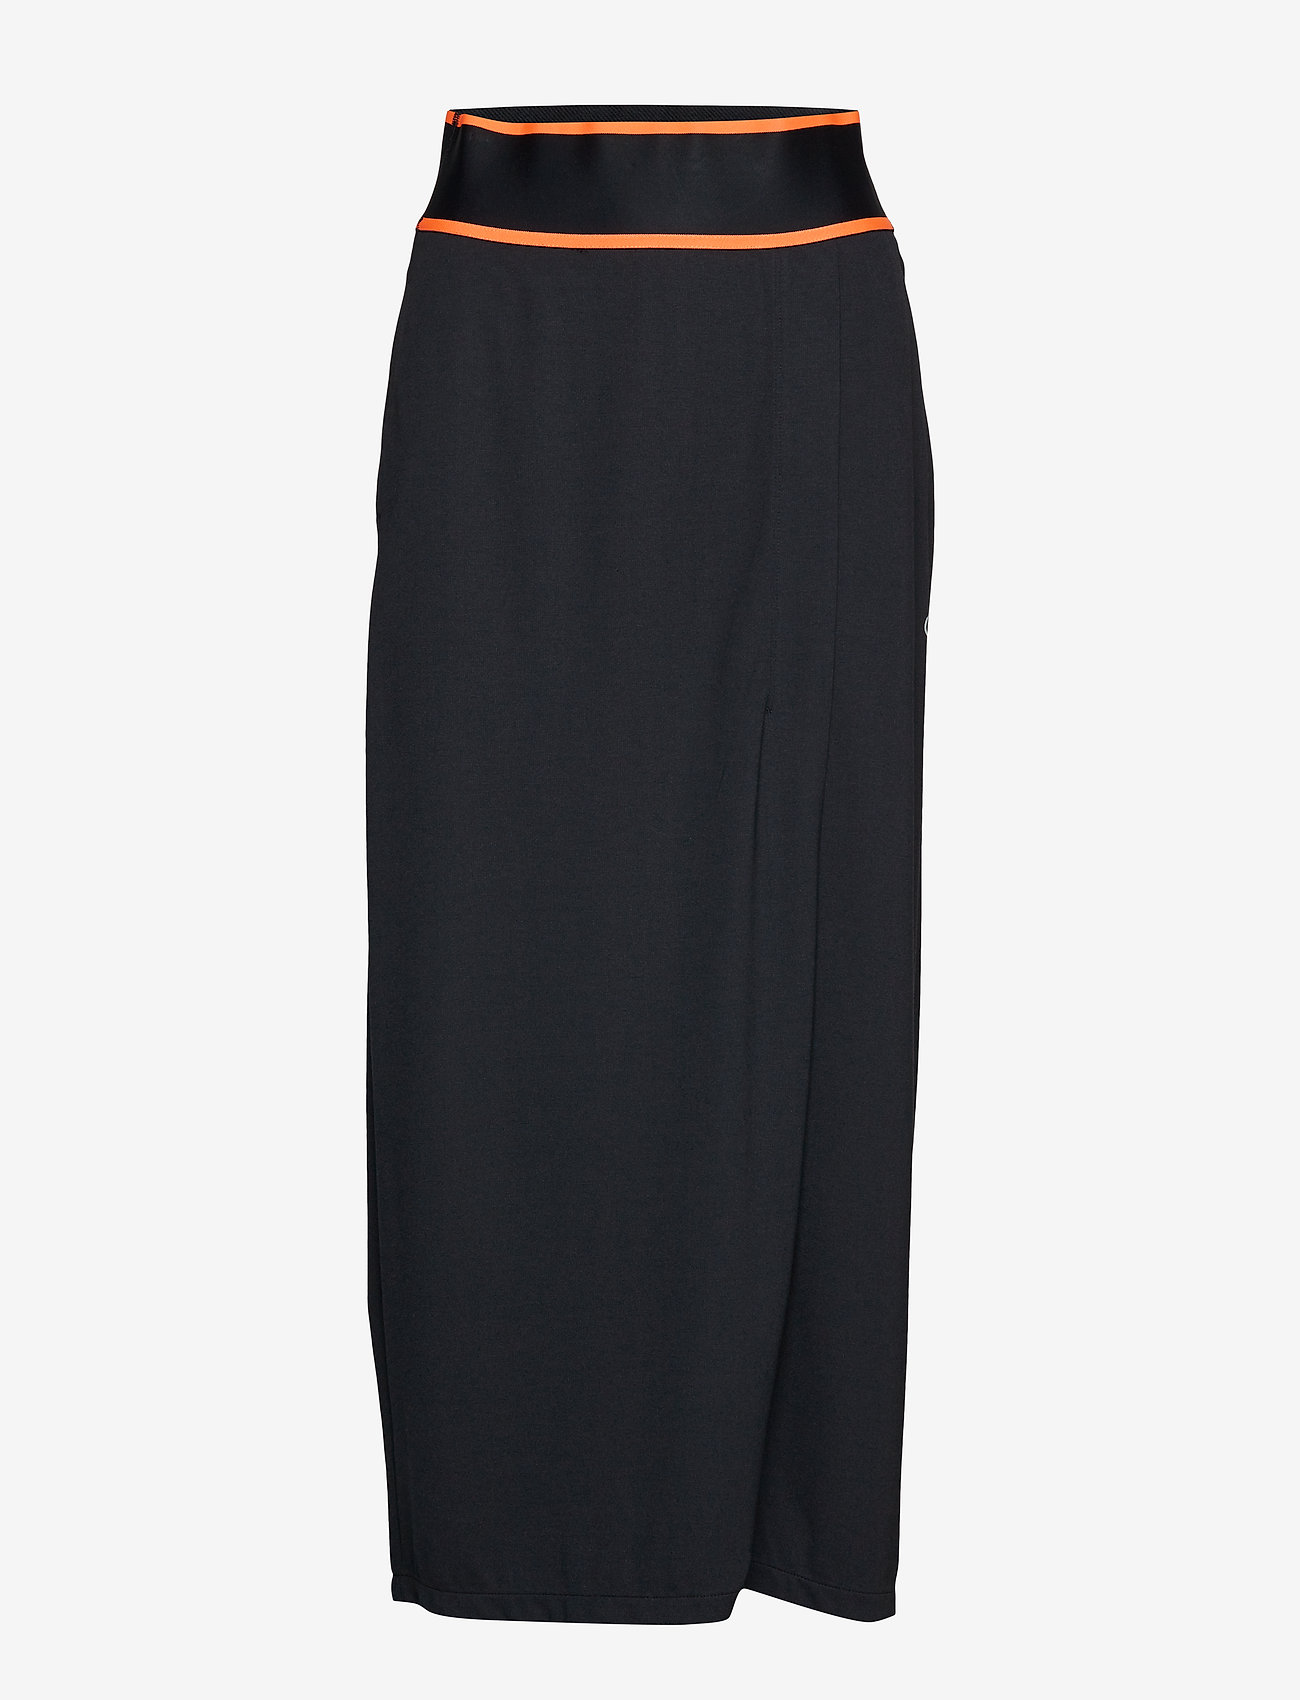 Calvin Klein Performance - MIDI SKIRT - sports skirts - ck black/fiery coral - 0